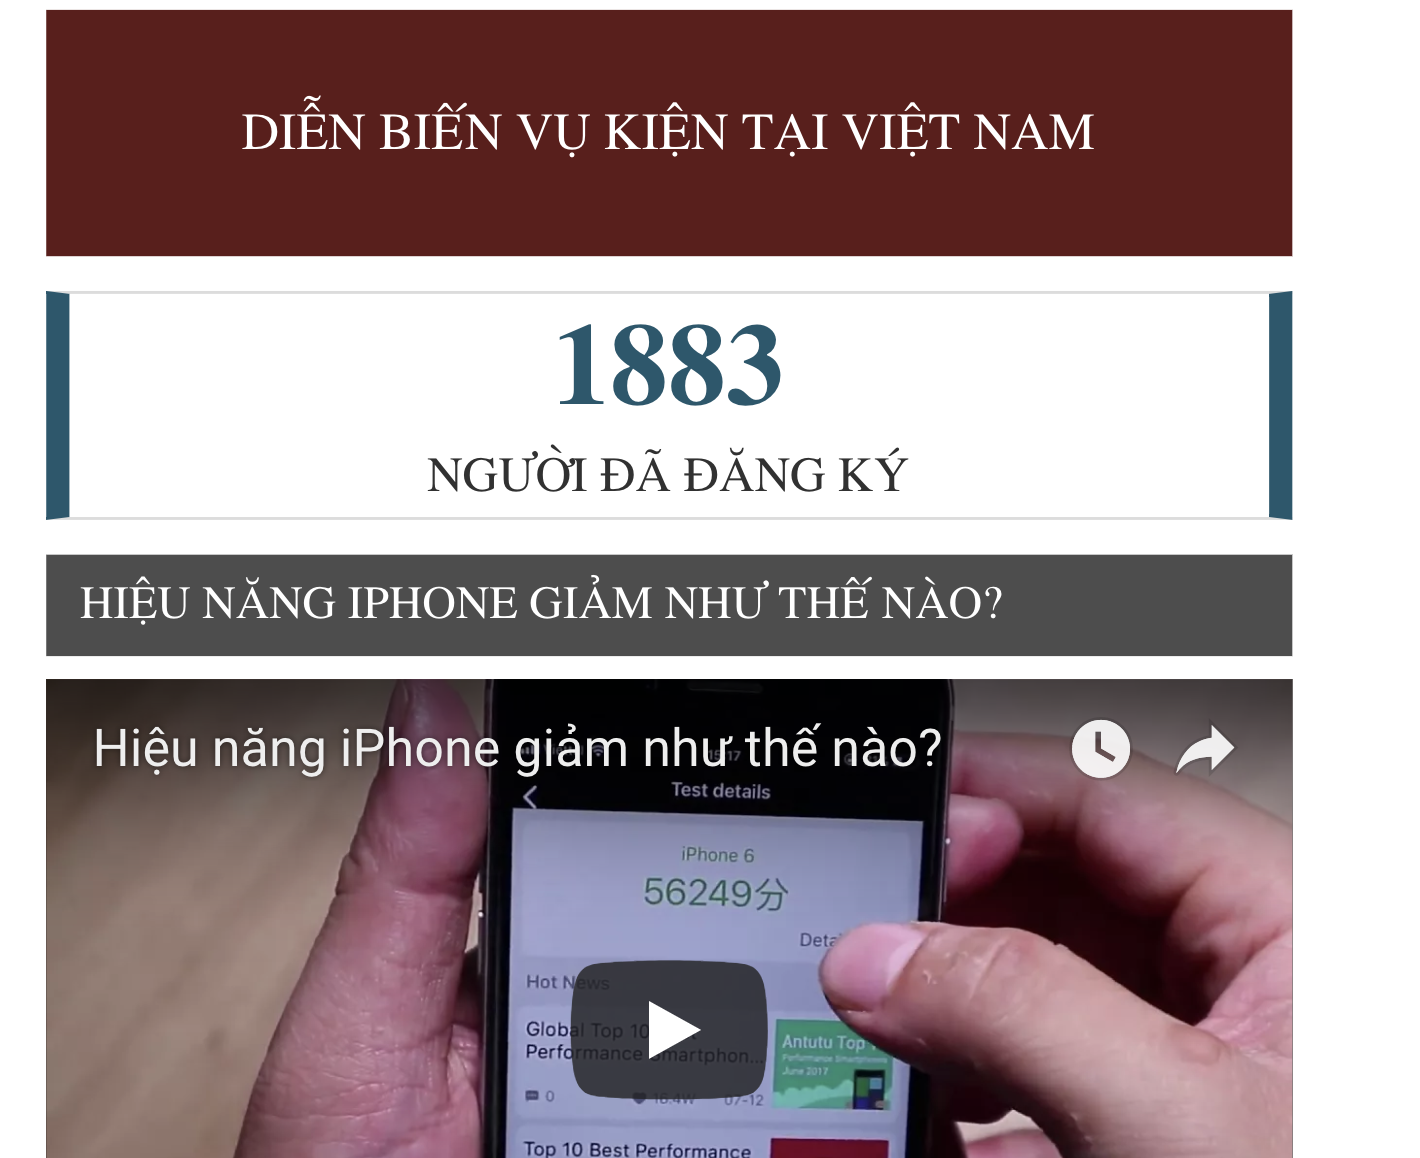 hon 1800 nguoi viet khoi kien apple doi co trach nhiem voi iphone cu